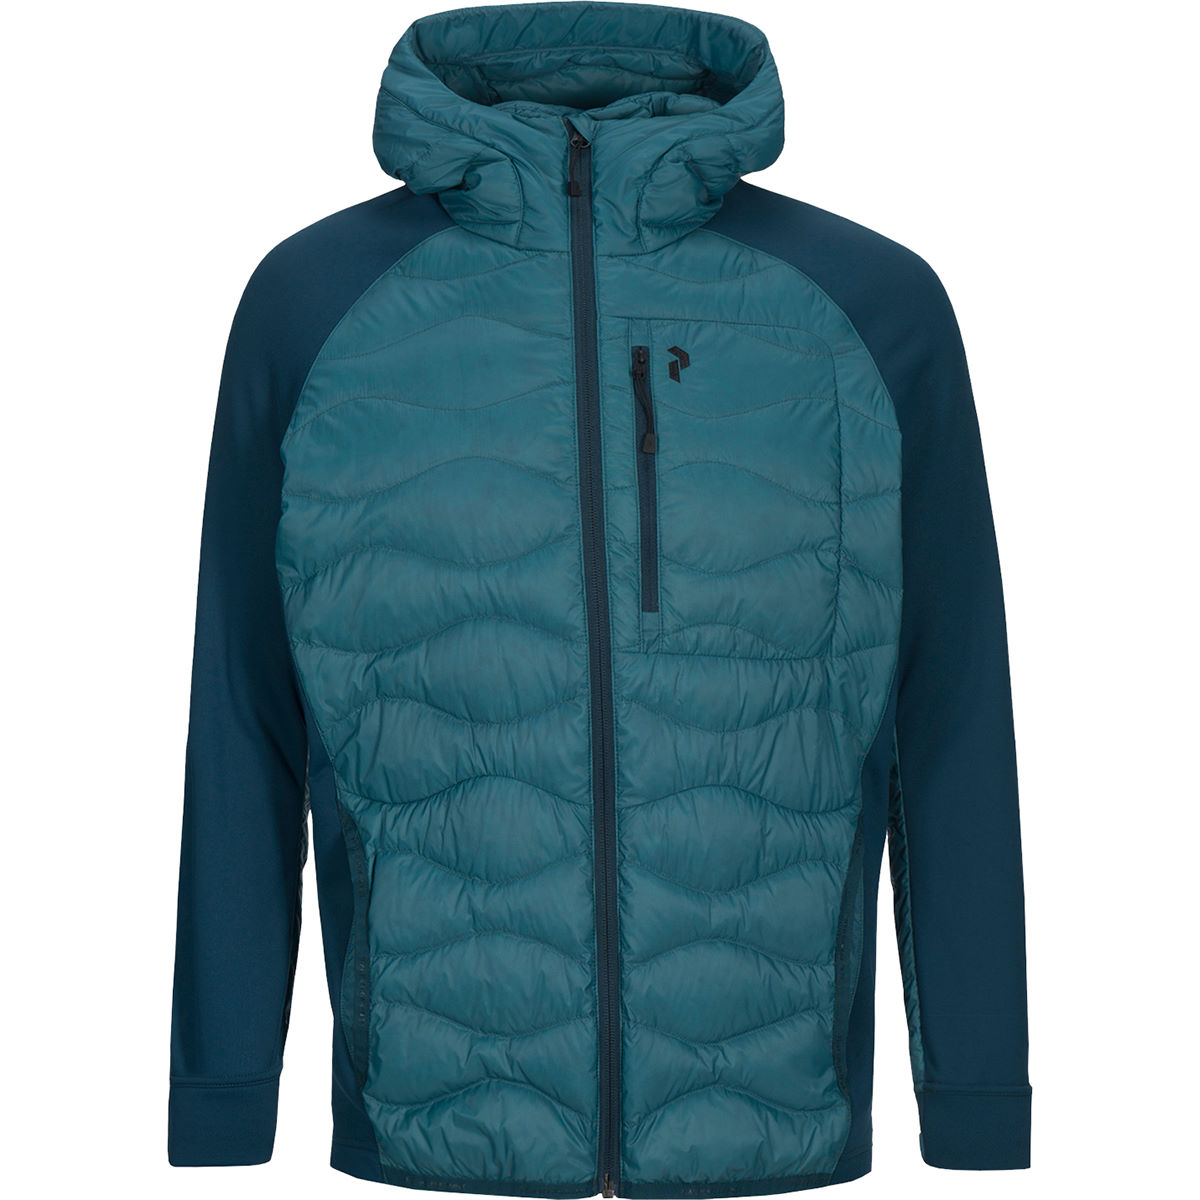 Peak Performance Helium Hybrid Hood Jacket   Jackets